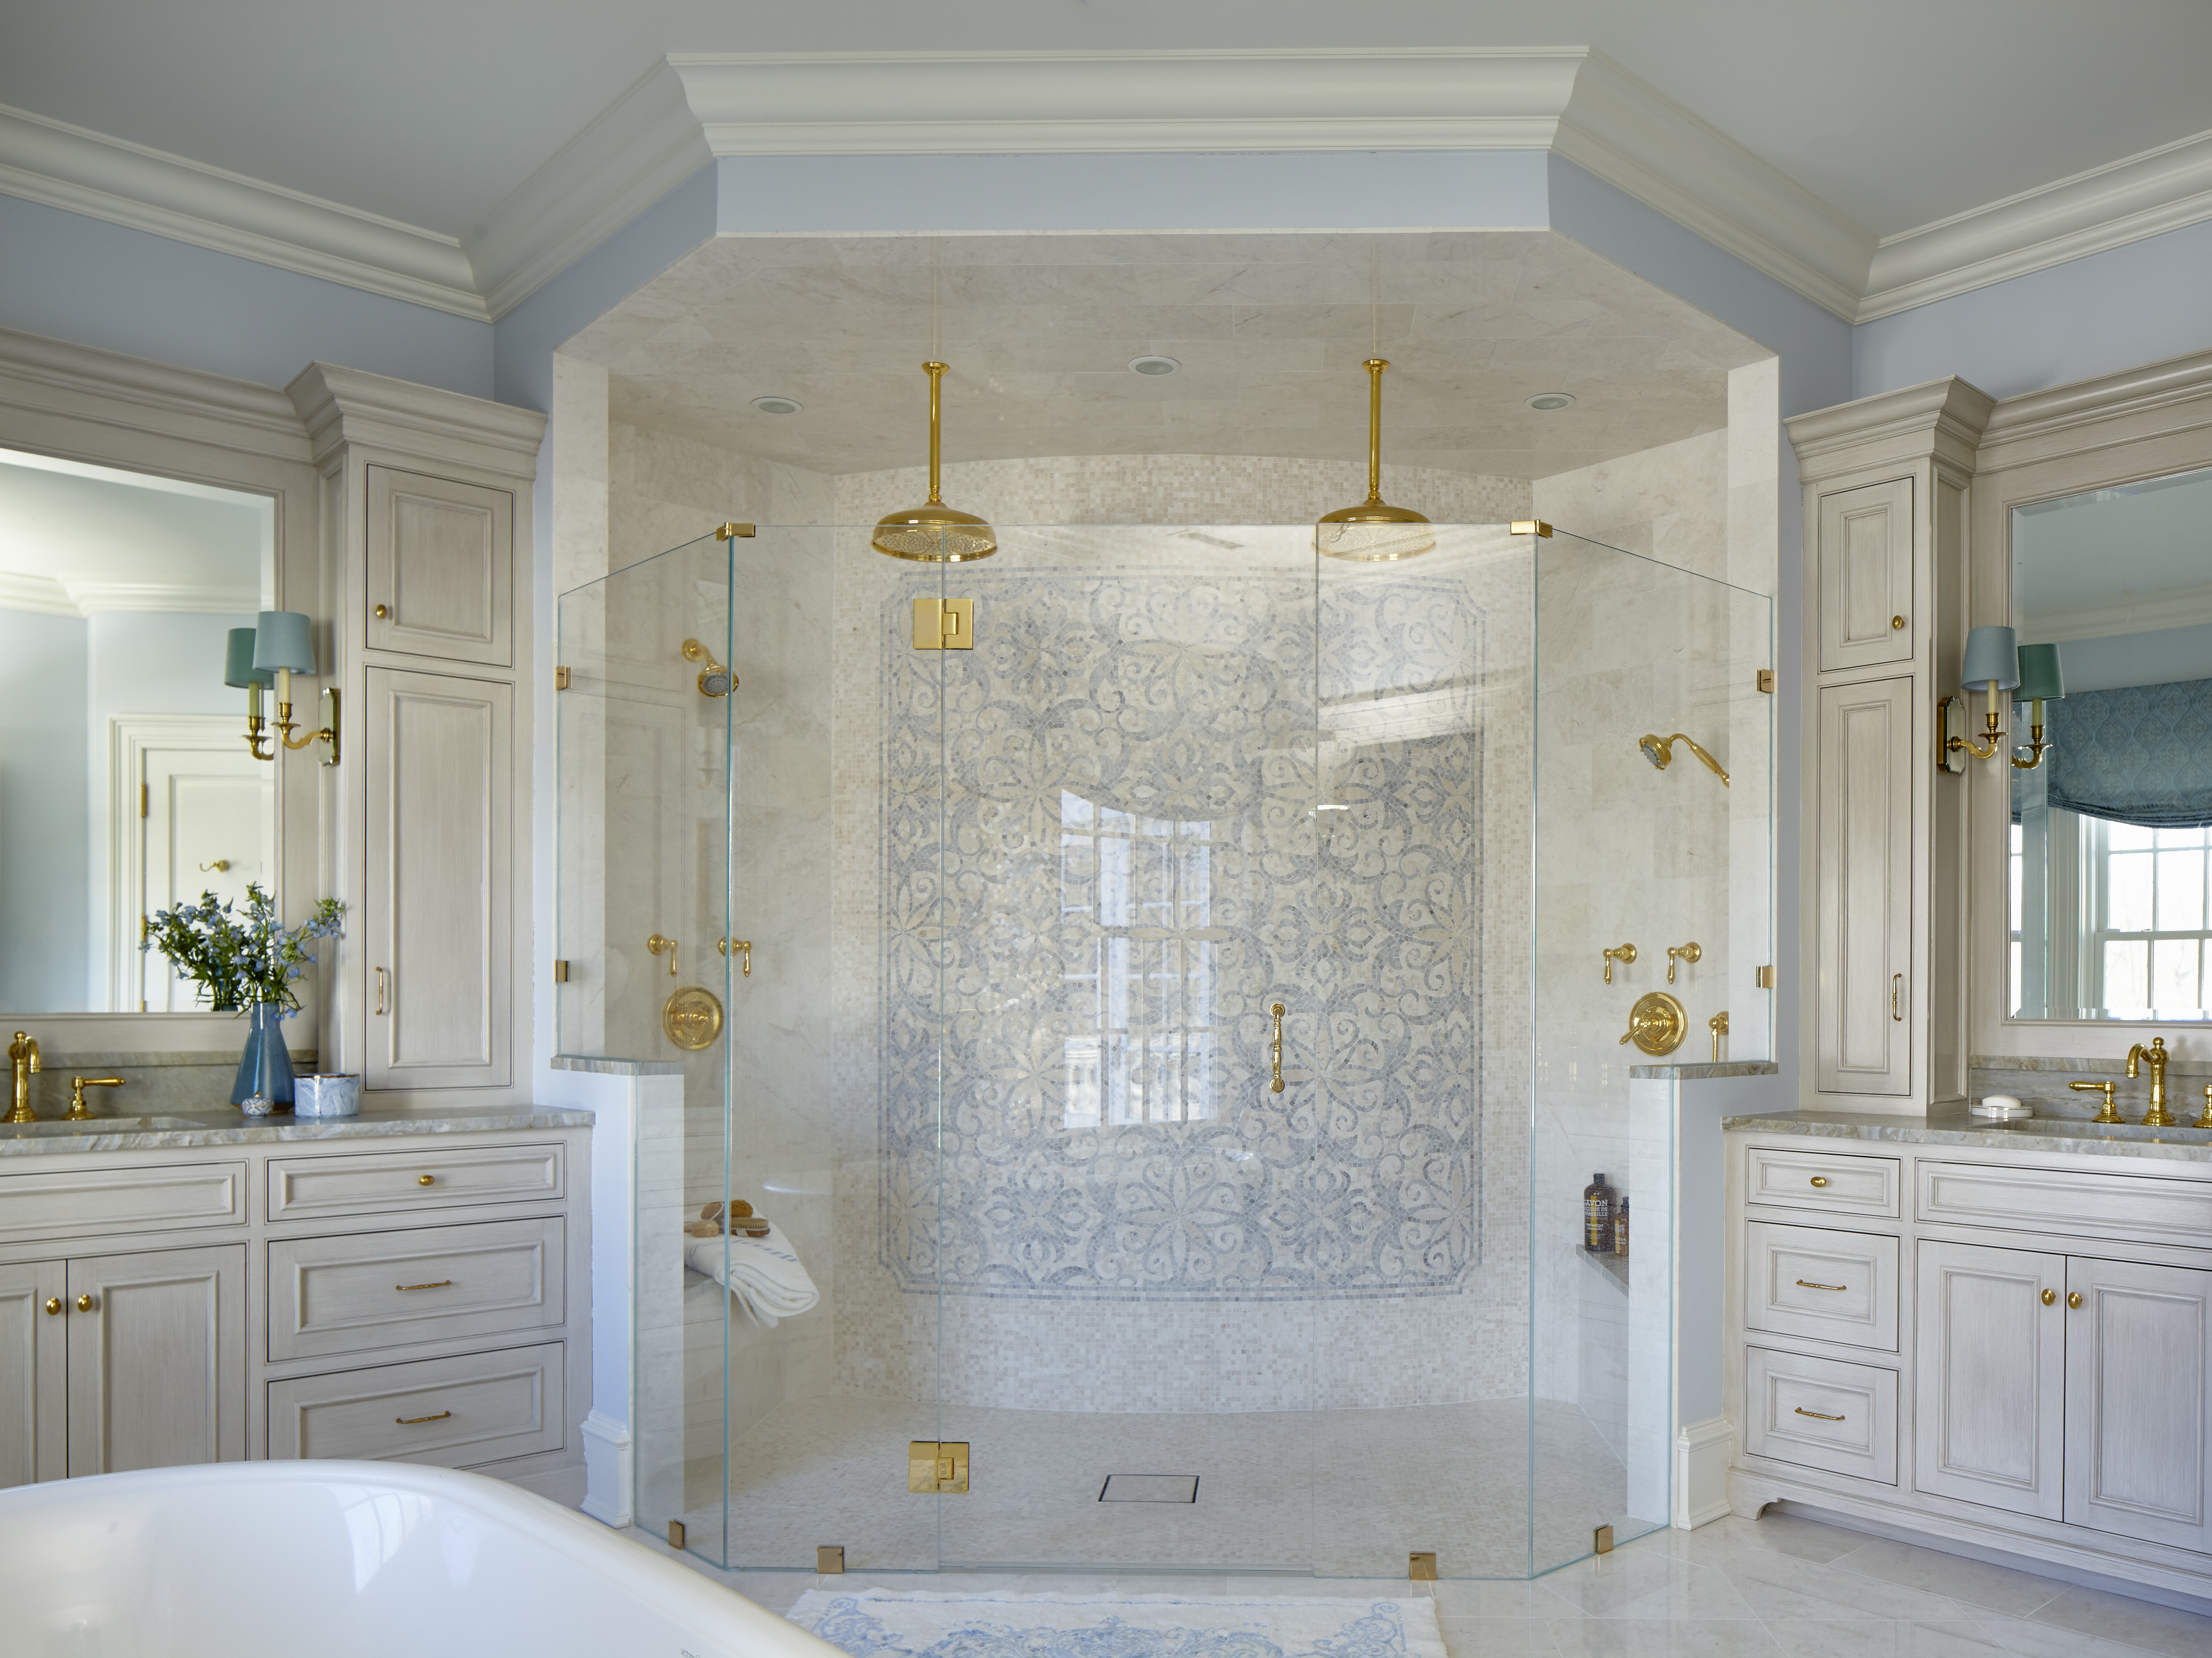 The Look Features Wood Cabinets, Painted Walls, Brushed Nickel Fixtures,  And A Color Palette Of White, Gray, And Blue. Contemporary, Which Has  Quartz ...